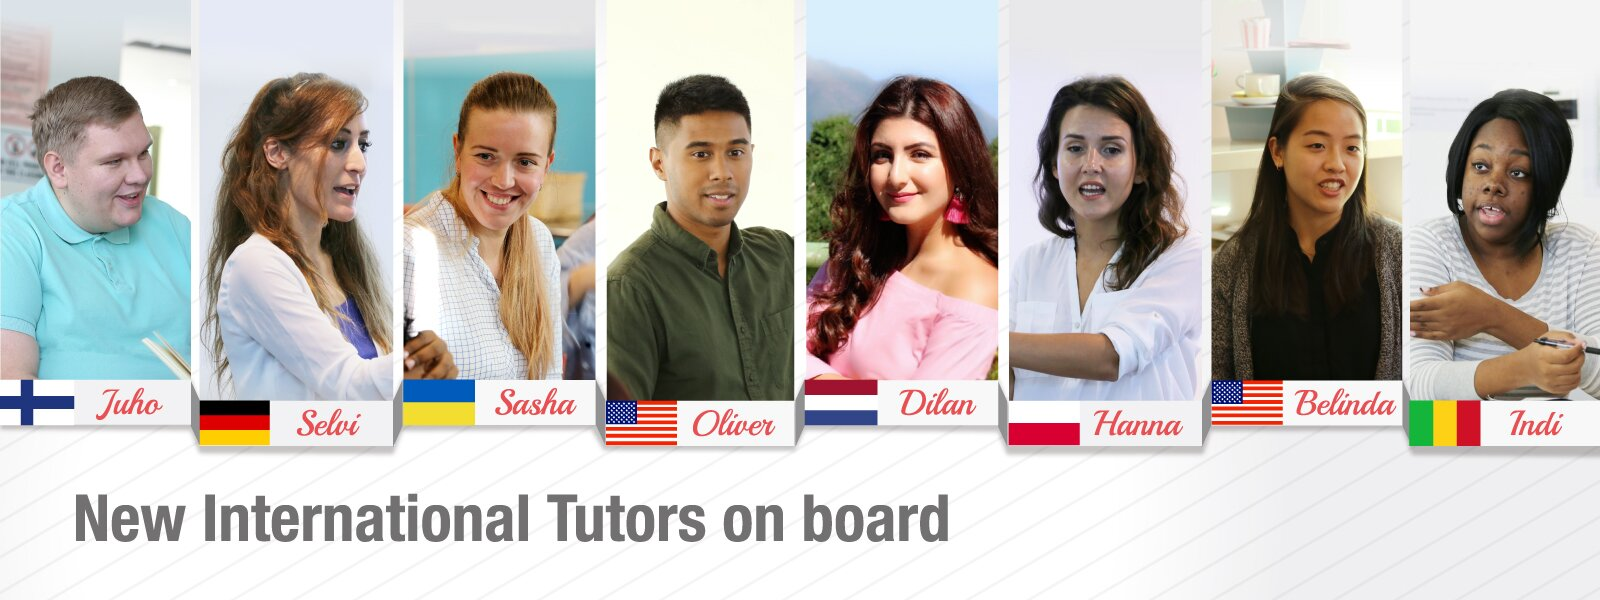 New International Tutors on board